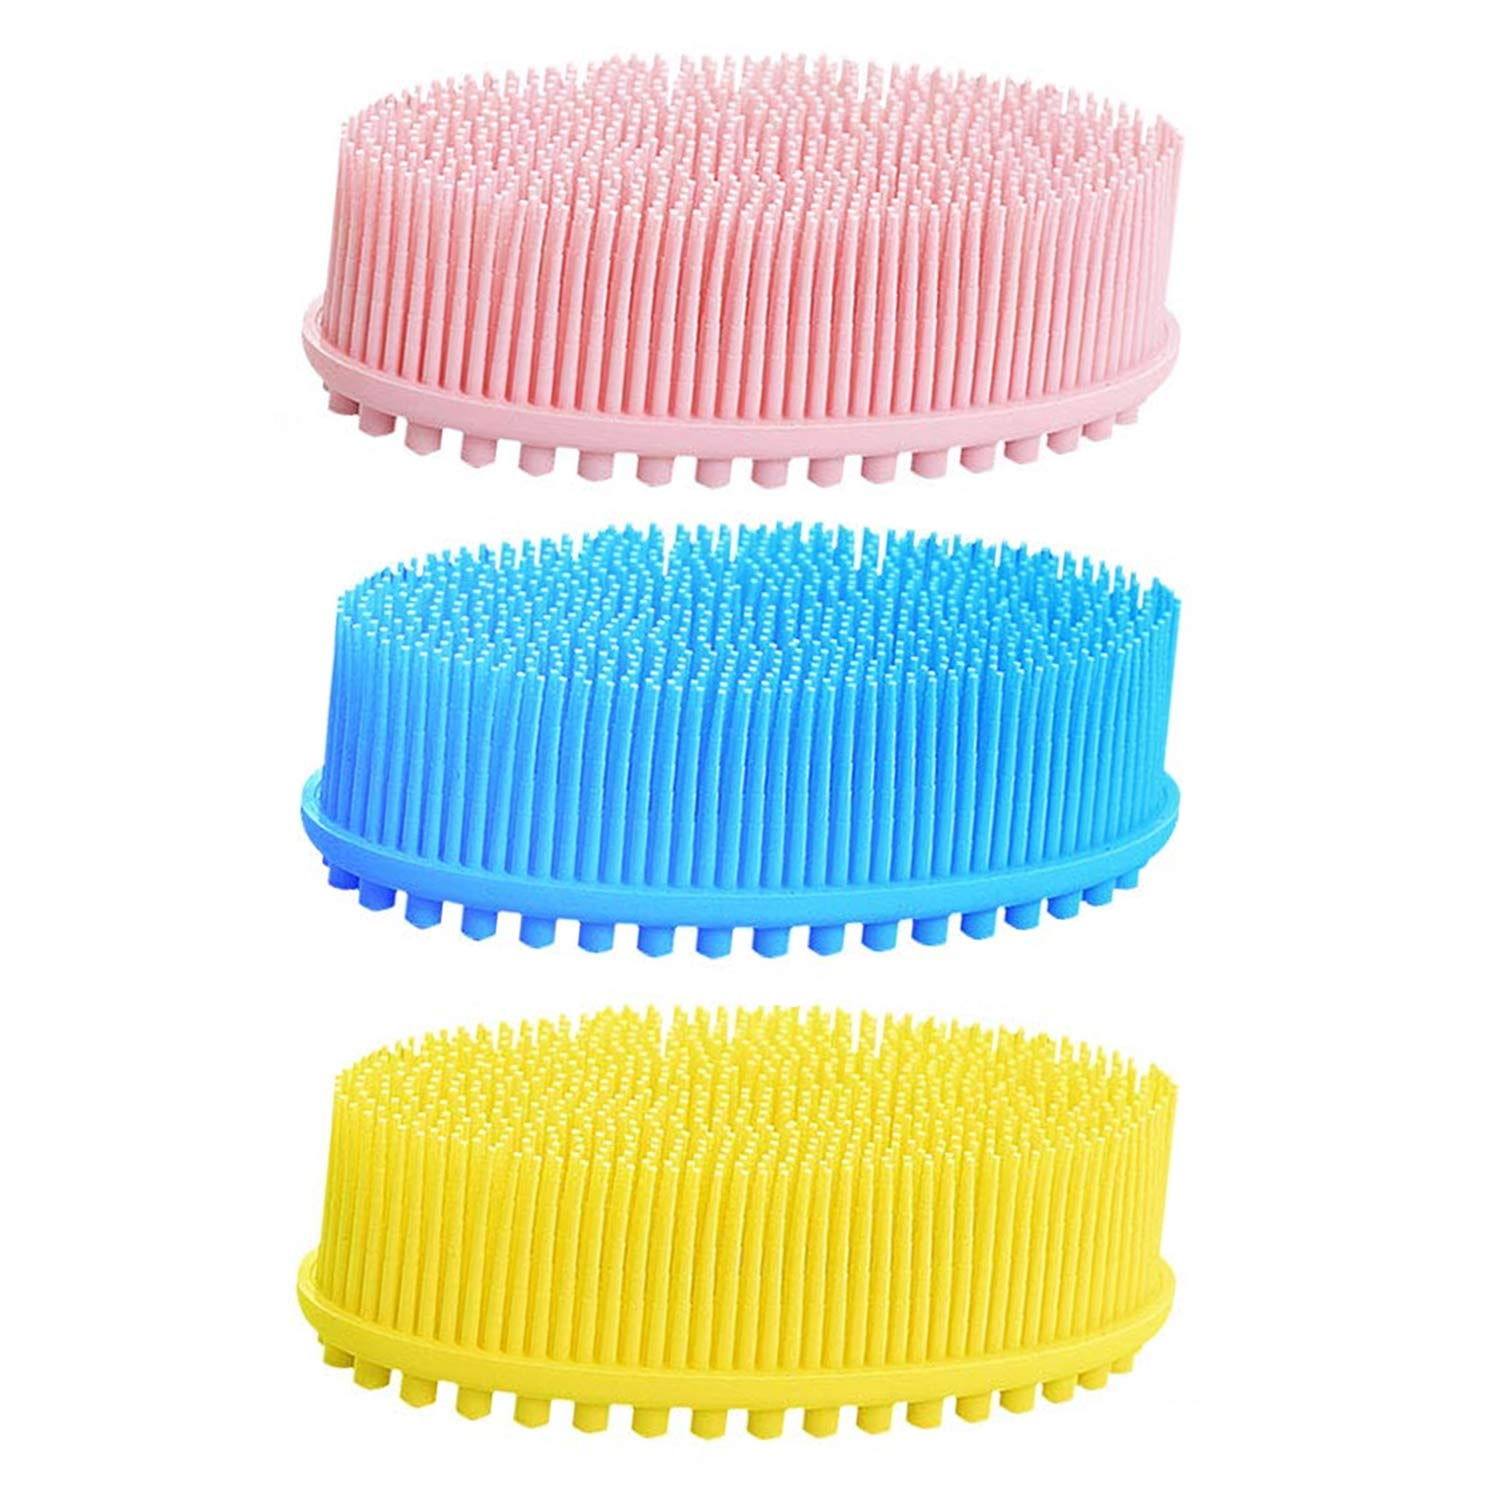 Silicone overseas Body Scrubber 3Pack Wash gift Brush